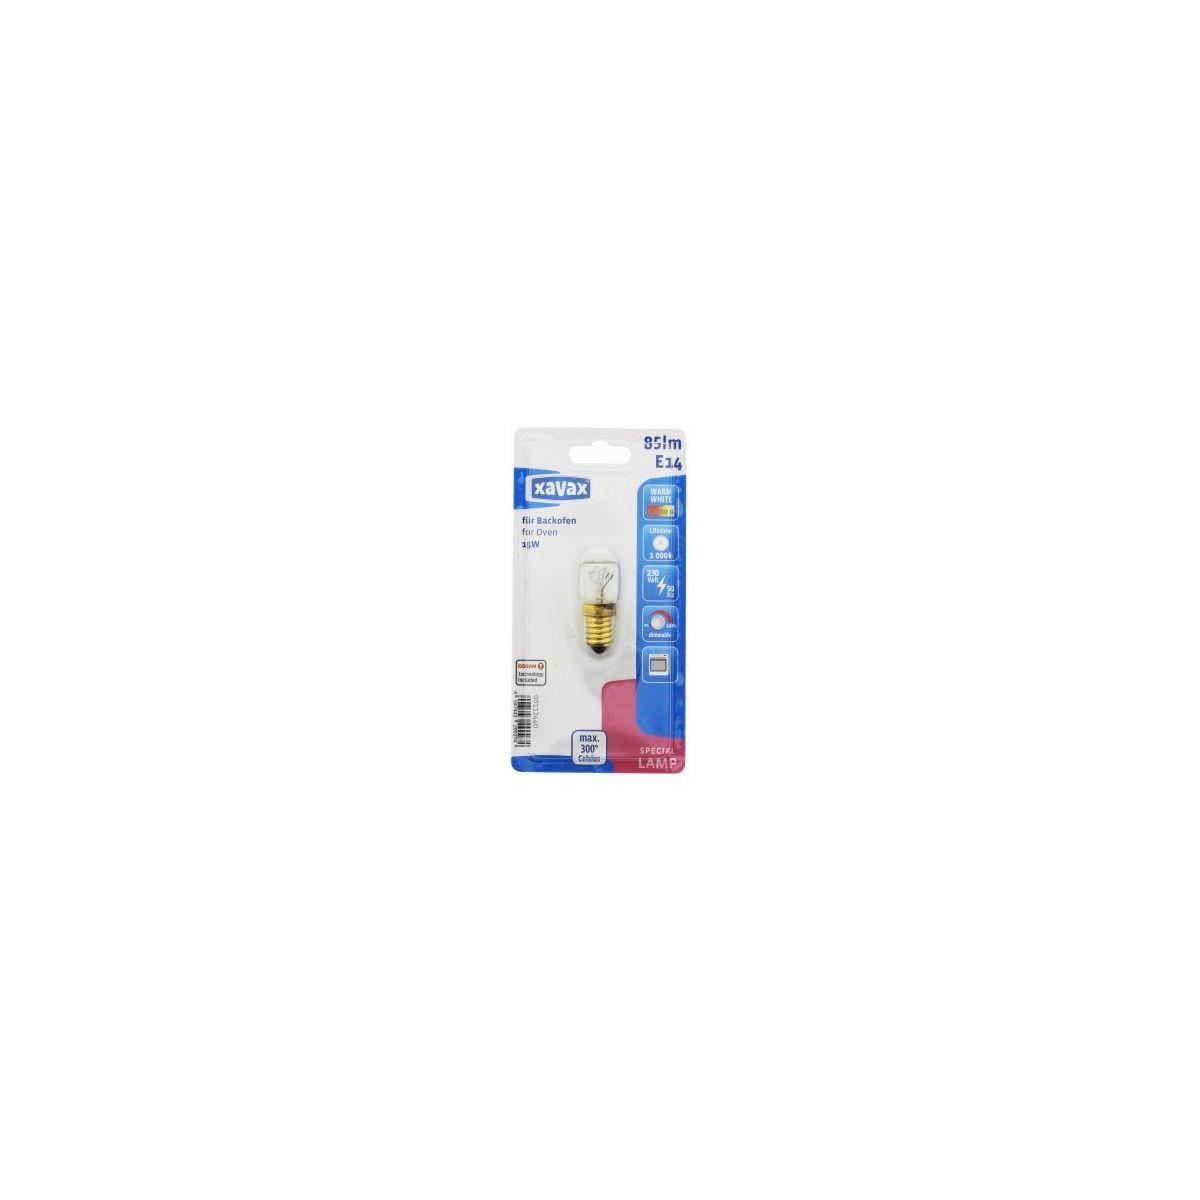 Ampoule xavax ampoule e14 15w four (photo)